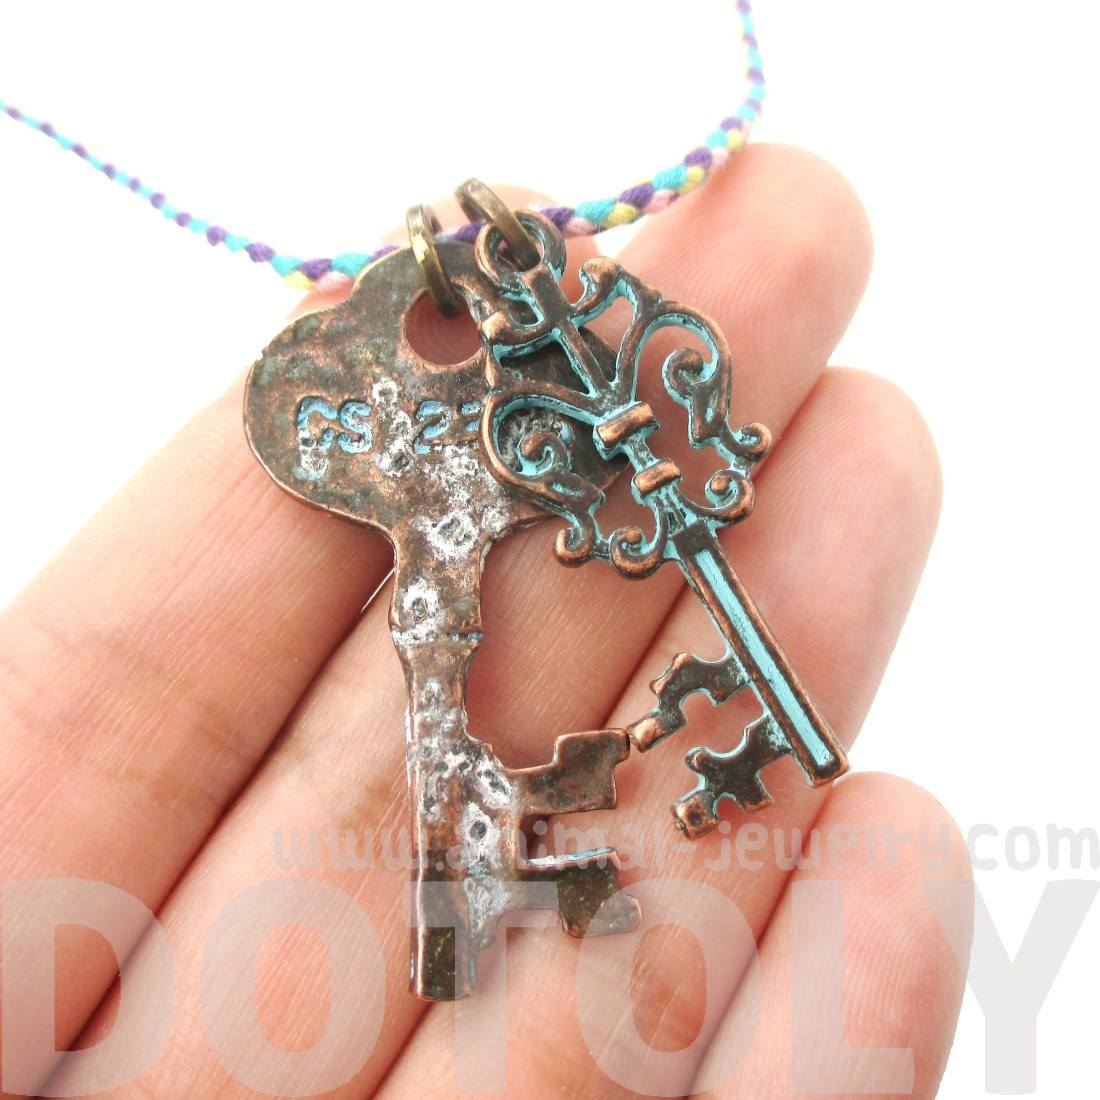 Vintage Turquoise Skeleton Key Charm Necklace in Brass | DOTOLY